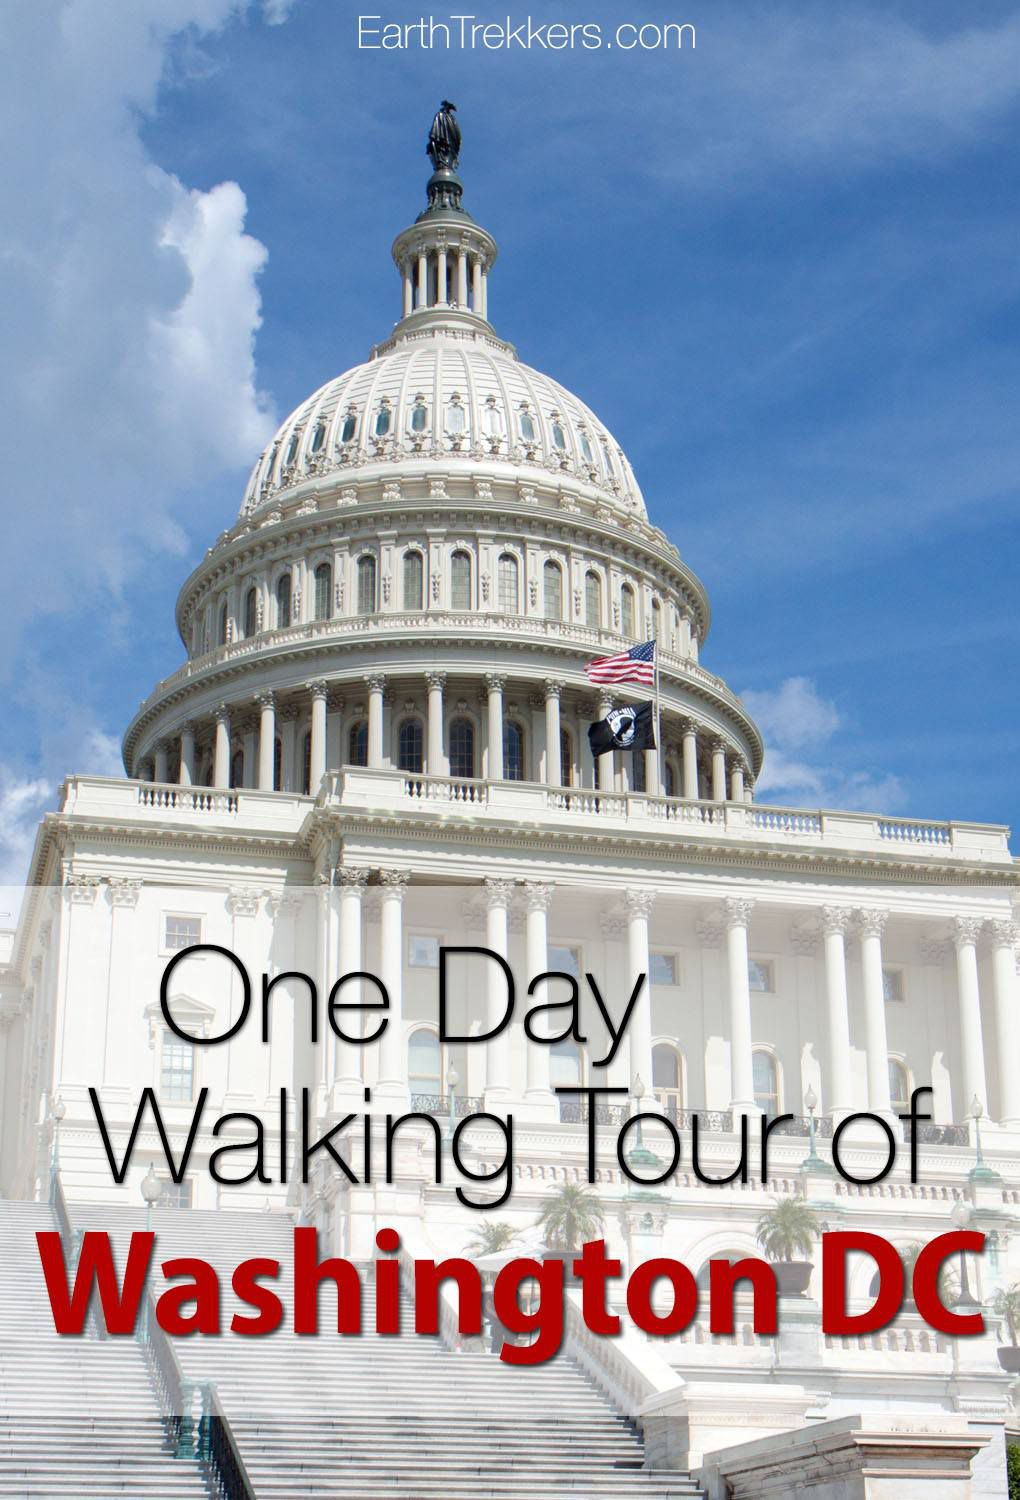 Washington DC One Day Walking Tour